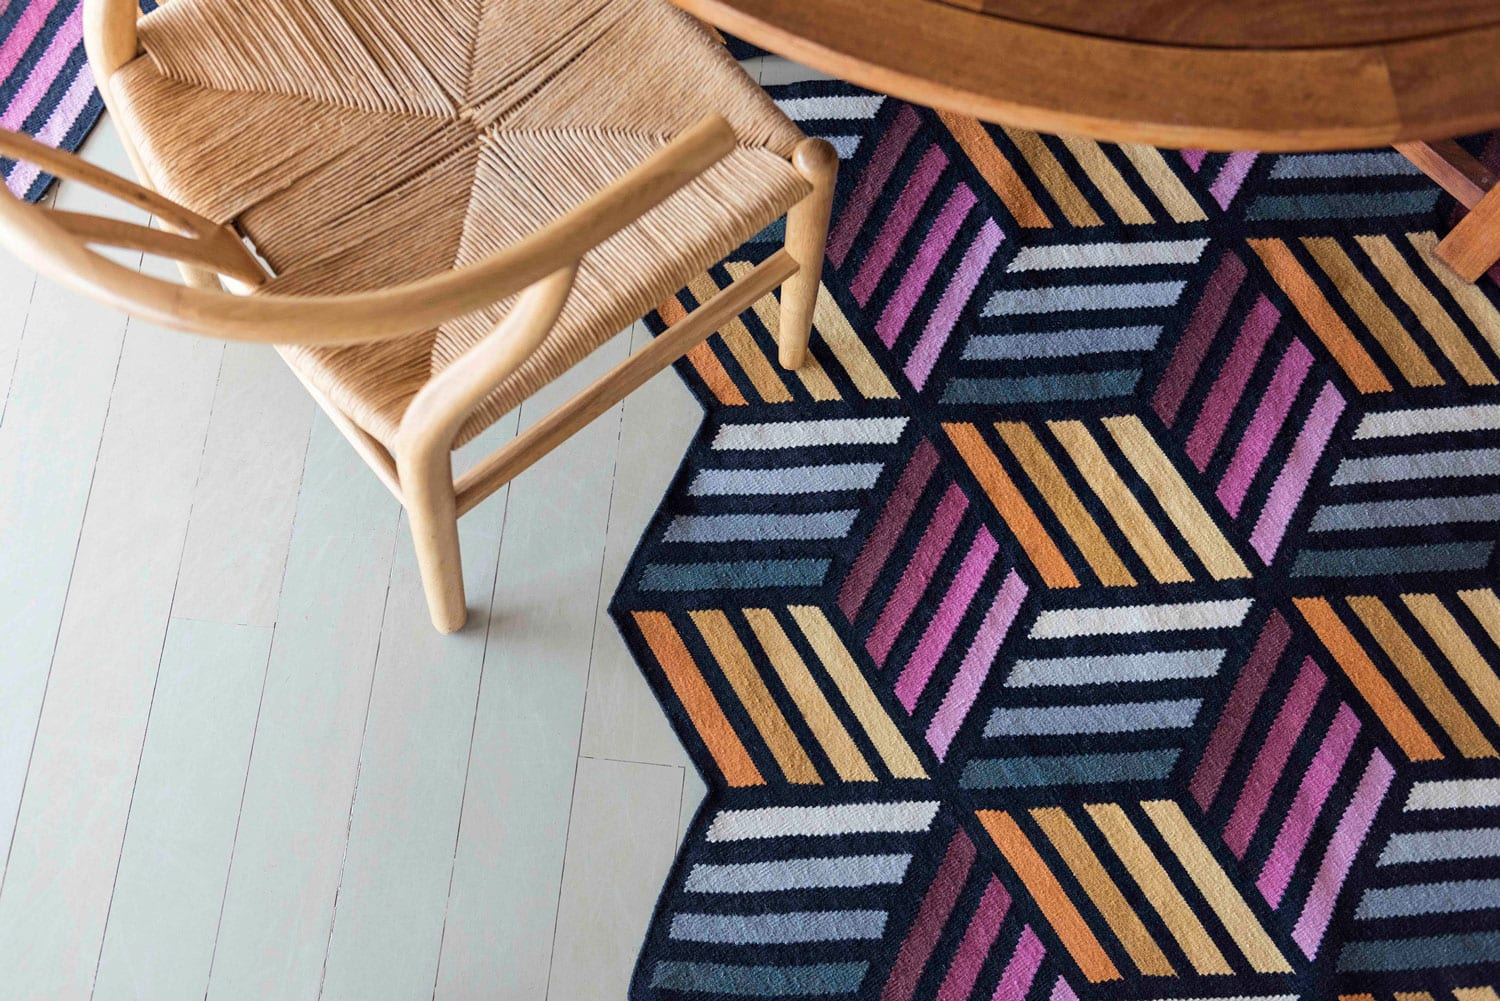 Rug Parquet by Front Design for Gan at IMM Cologne 2018 | Yellowtrace